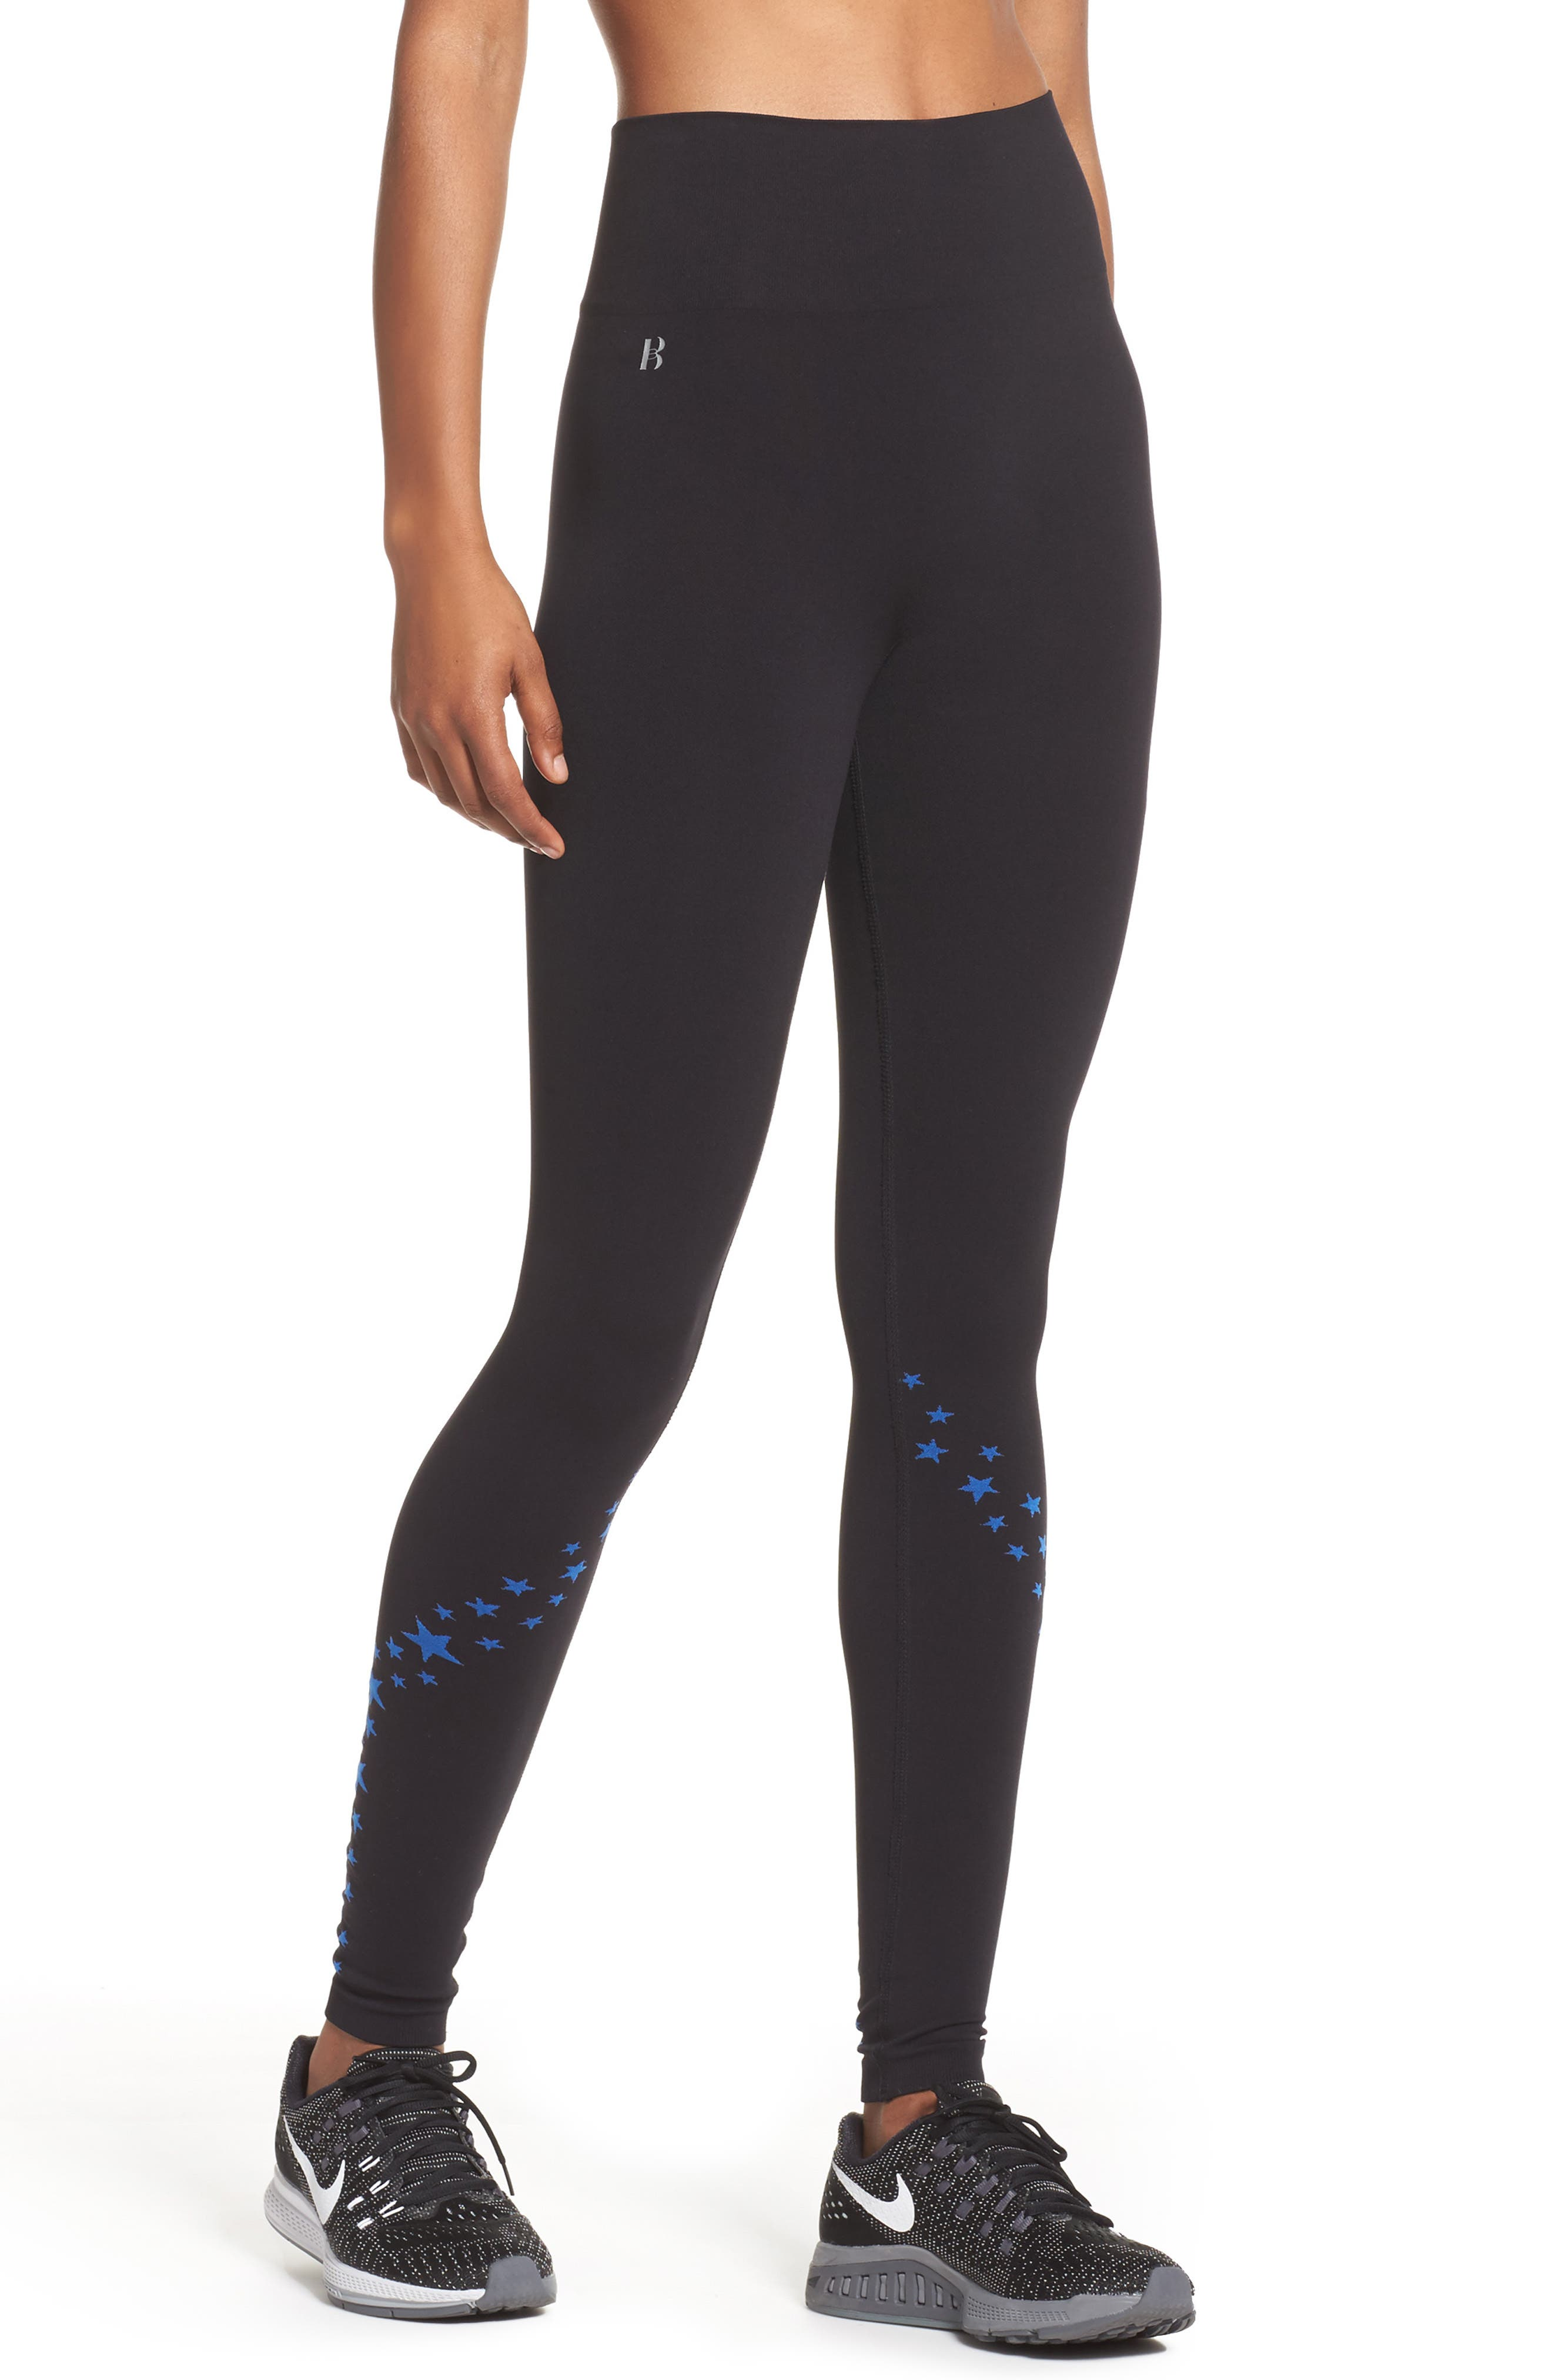 BoomBoom Athletica Seamless Star Leggings